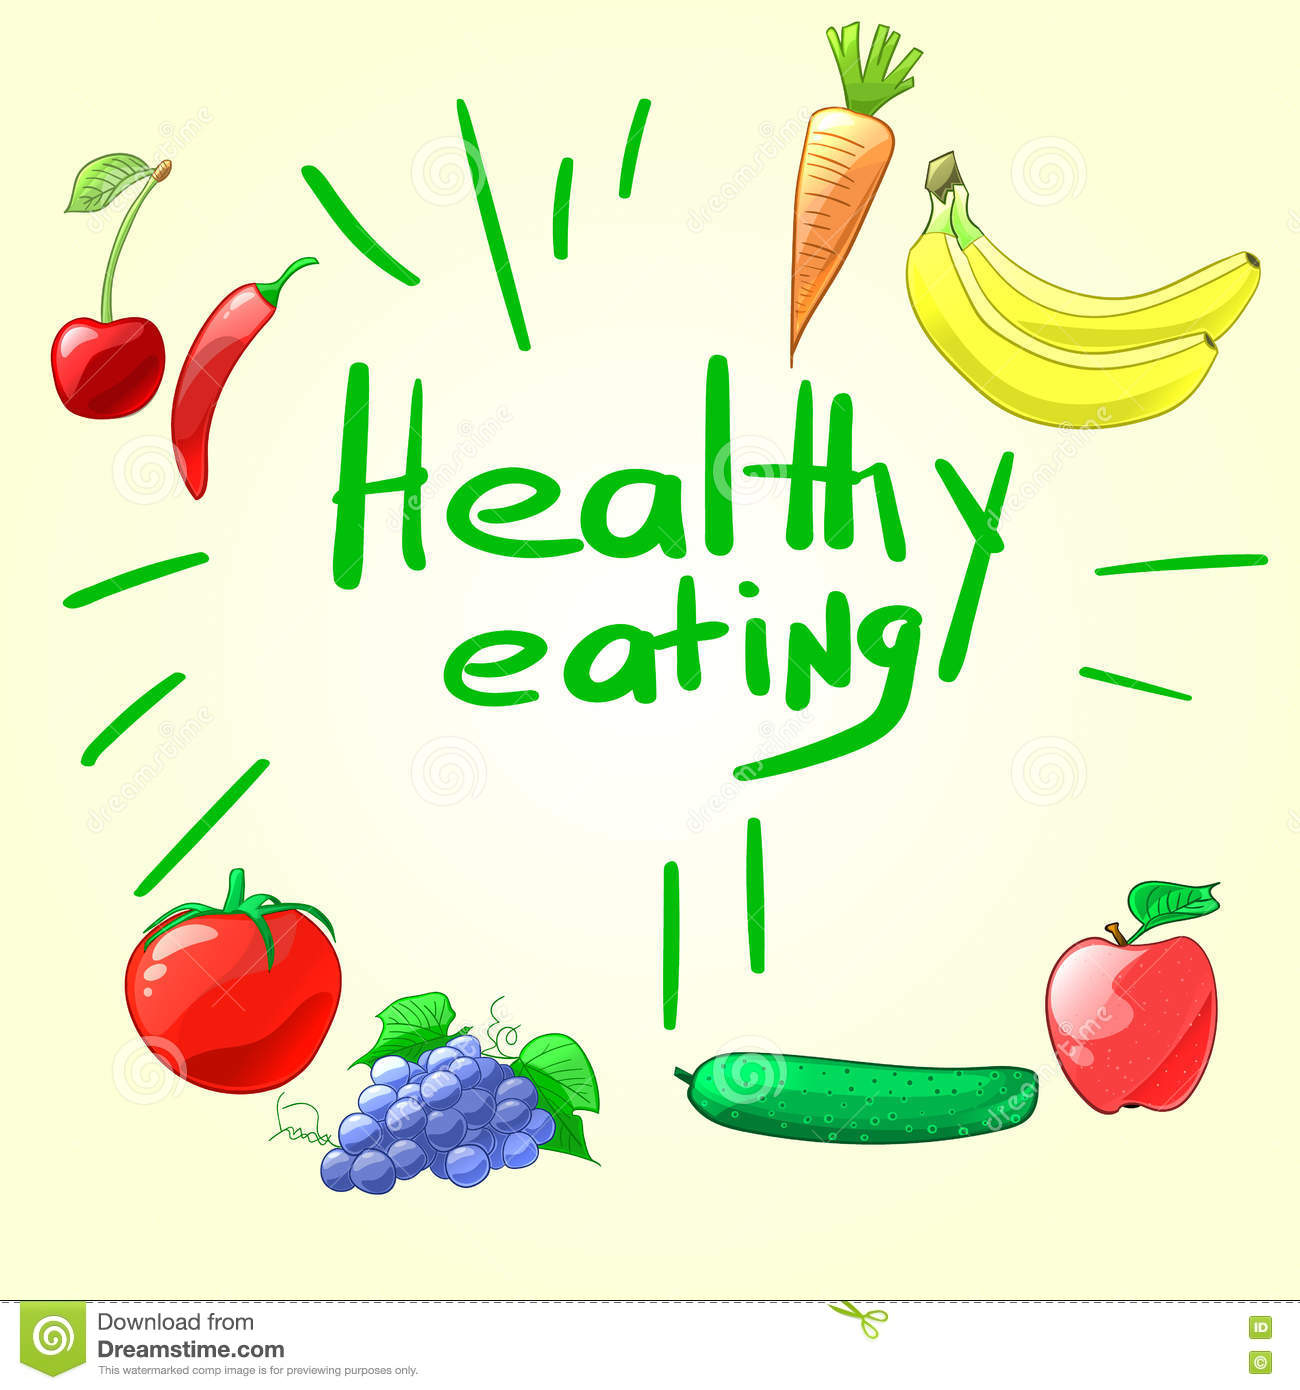 importance of eating fresh fruits and vegetables While they all have benefits, some are healthier than others  blueberries have  more antioxidants than any other fruit or vegetable, so grab a handful if   grapefruits are acidic and sour, so the idea of eating them raw may not appeal to  you.